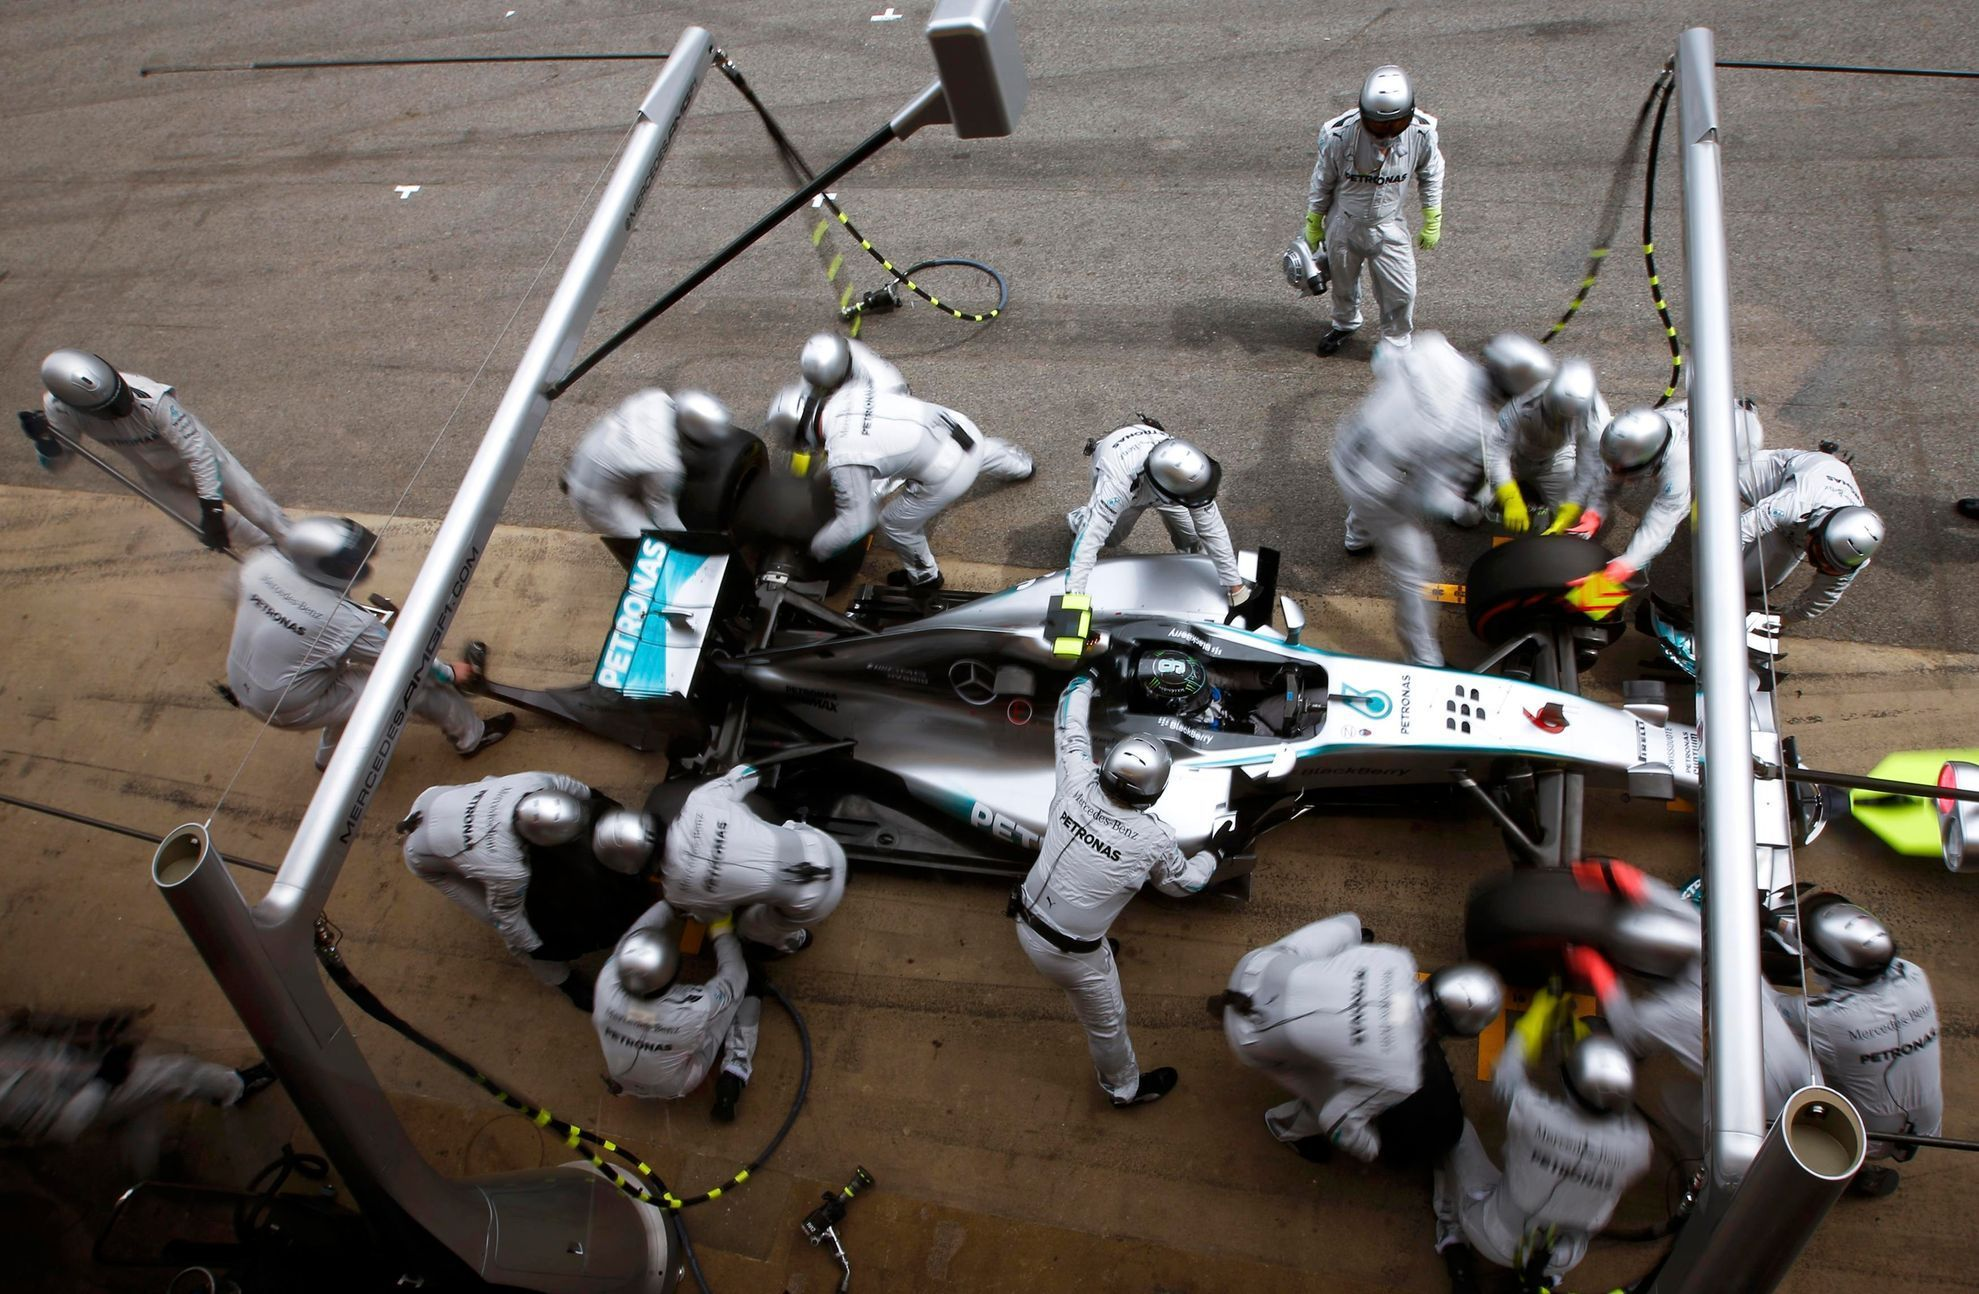 Crew members of Mercedes Formula One driver Rosberg of Germany service the car at pit stop during the Spanish F1 Grand Prix at the Barcelona-Catalunya Circuit in Montmelo